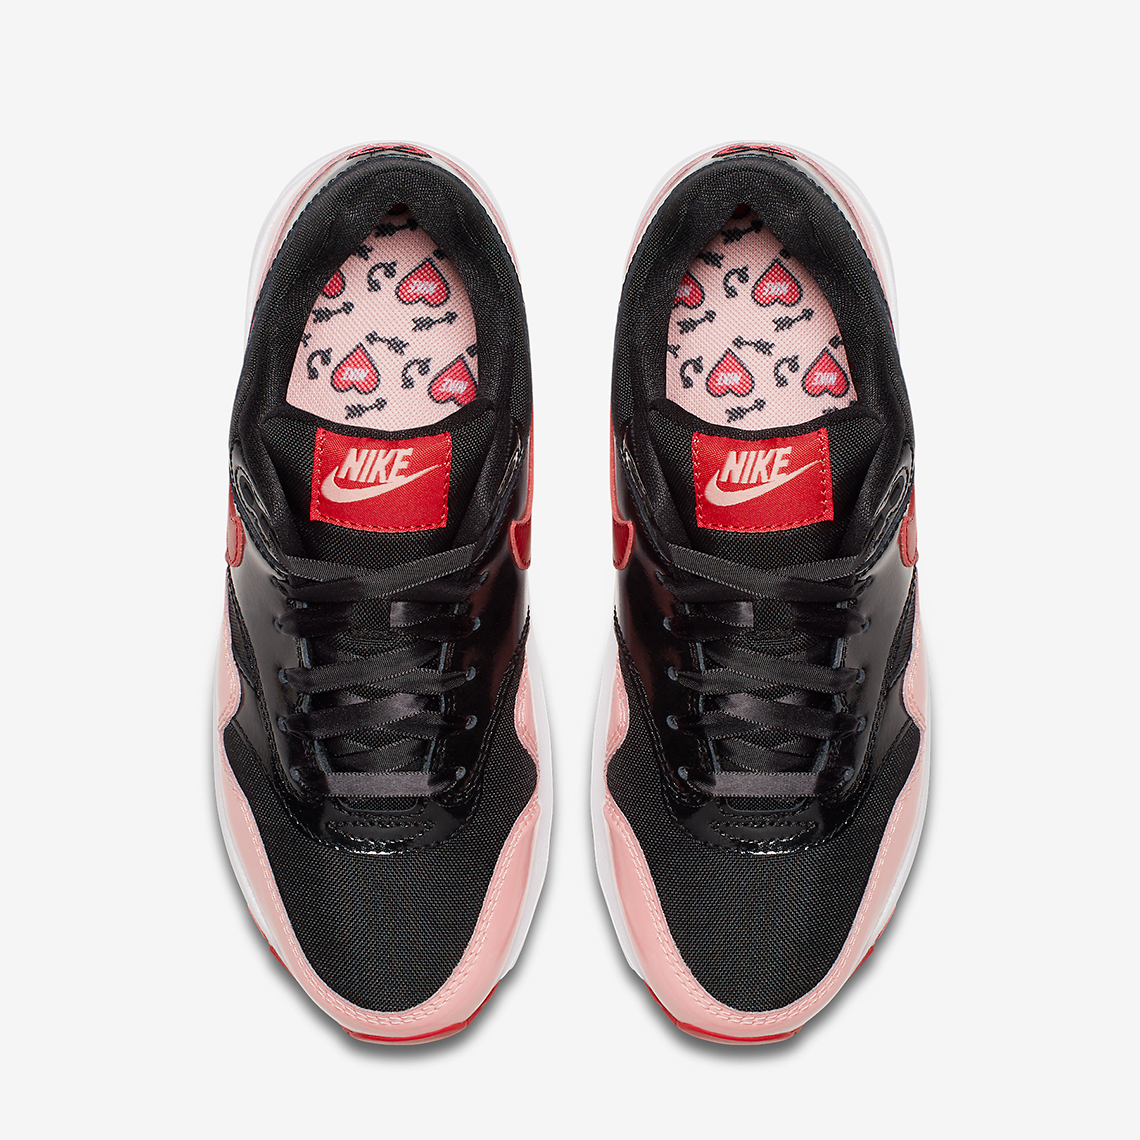 promo code 669b0 769ec The Perfect Valentine s Day Sneakers For Nike Obsessed Kids. February 1 ...